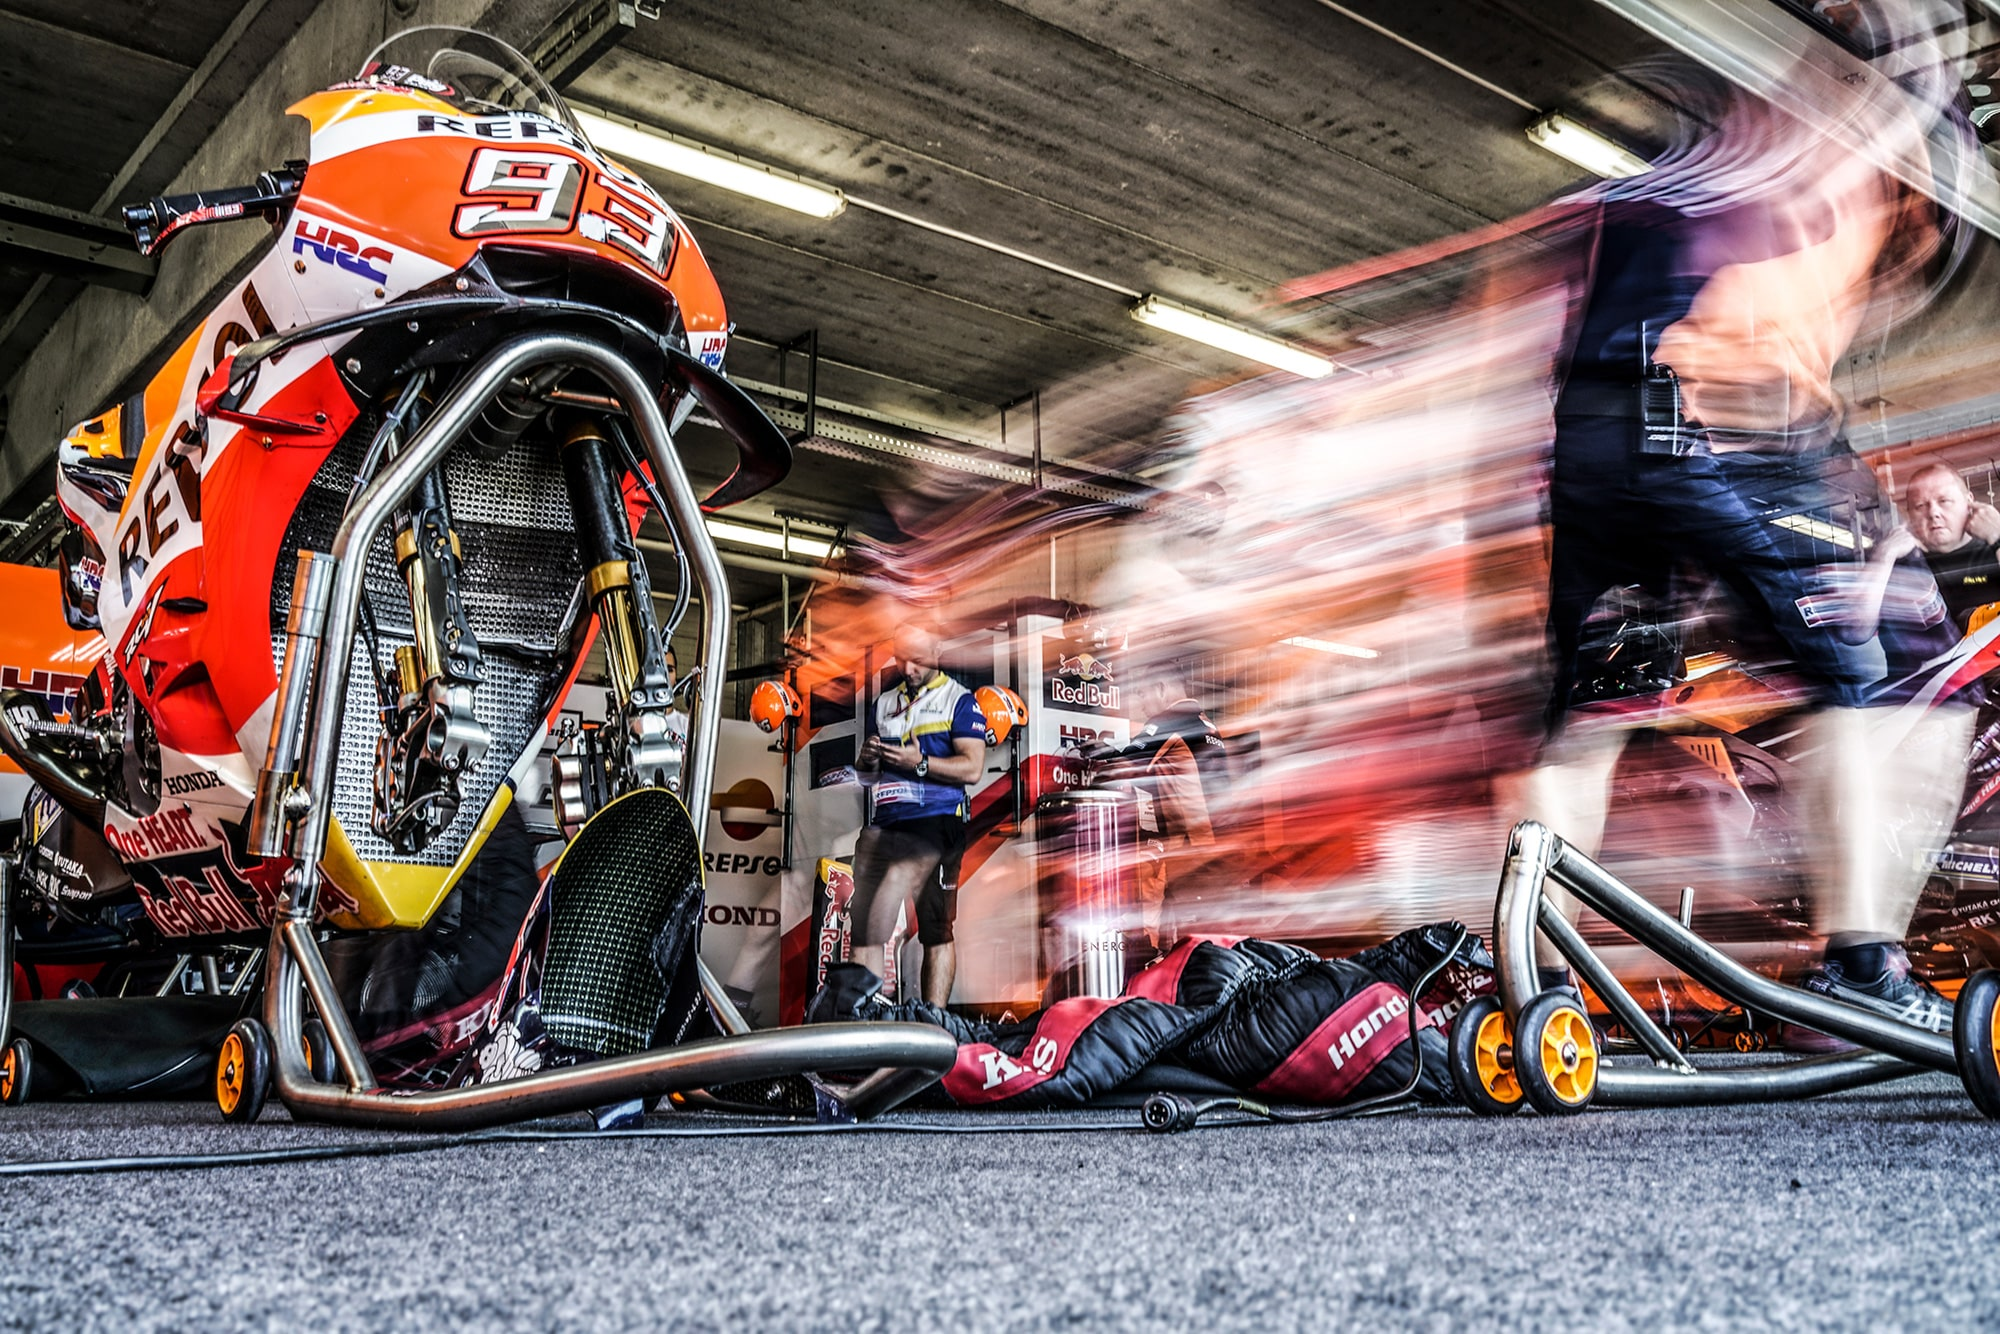 alejandro-ceresuela-sony-rx1rII-long-exposure-of-rider-and-pit-crew